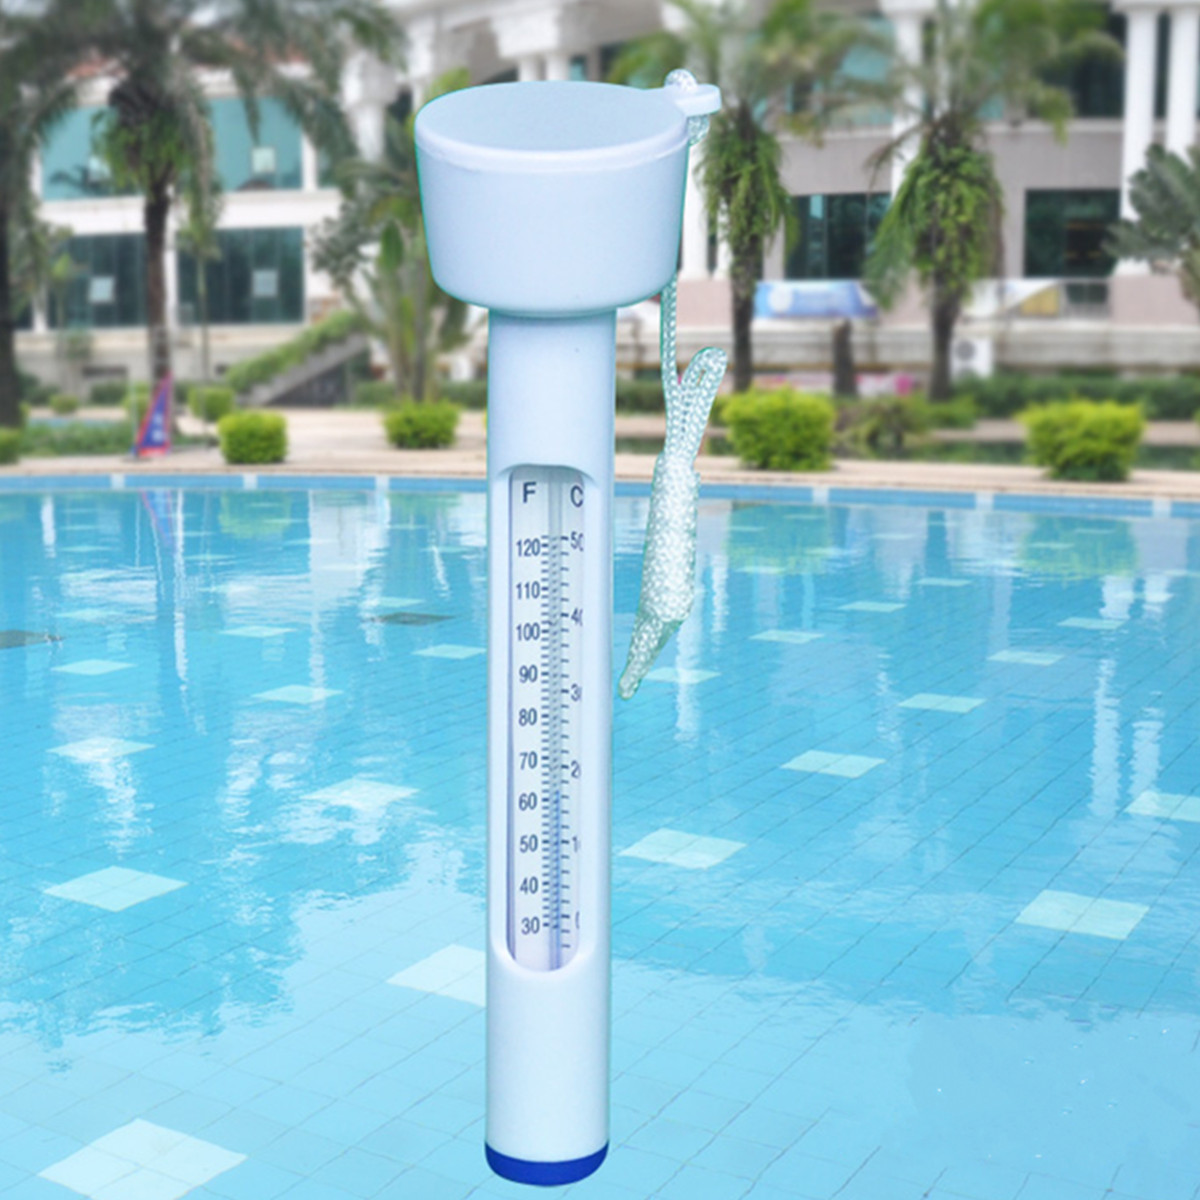 Floating Waterproof Temperature Thermometer for Swimming Pool Bath Spa Hot Tub Supported Celsius Fahrenheit